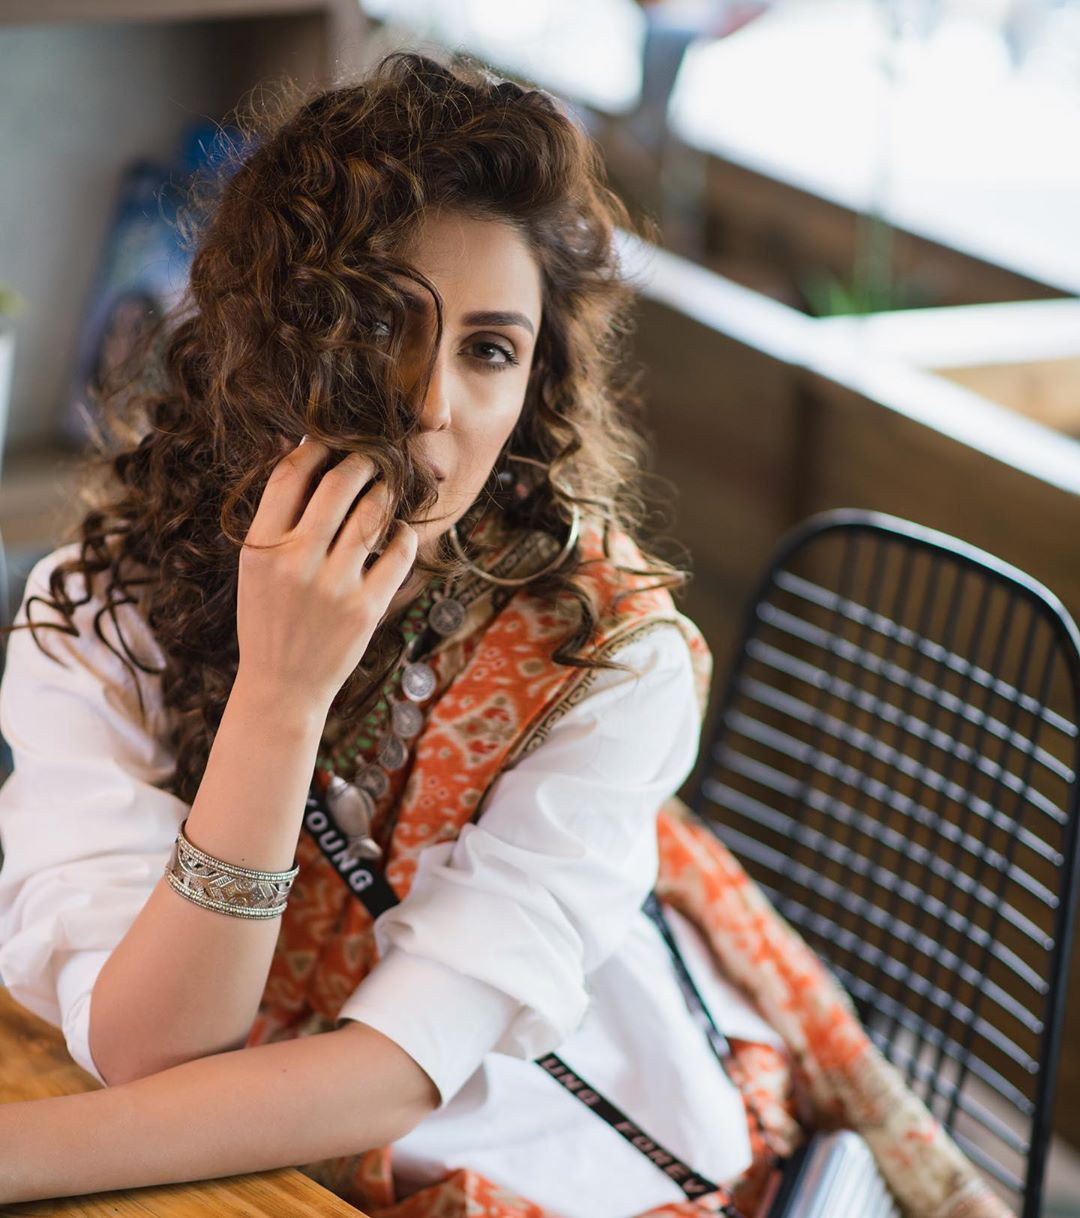 Ayeza Khan Shared her Favorite Look from her Recent Photo Shoot